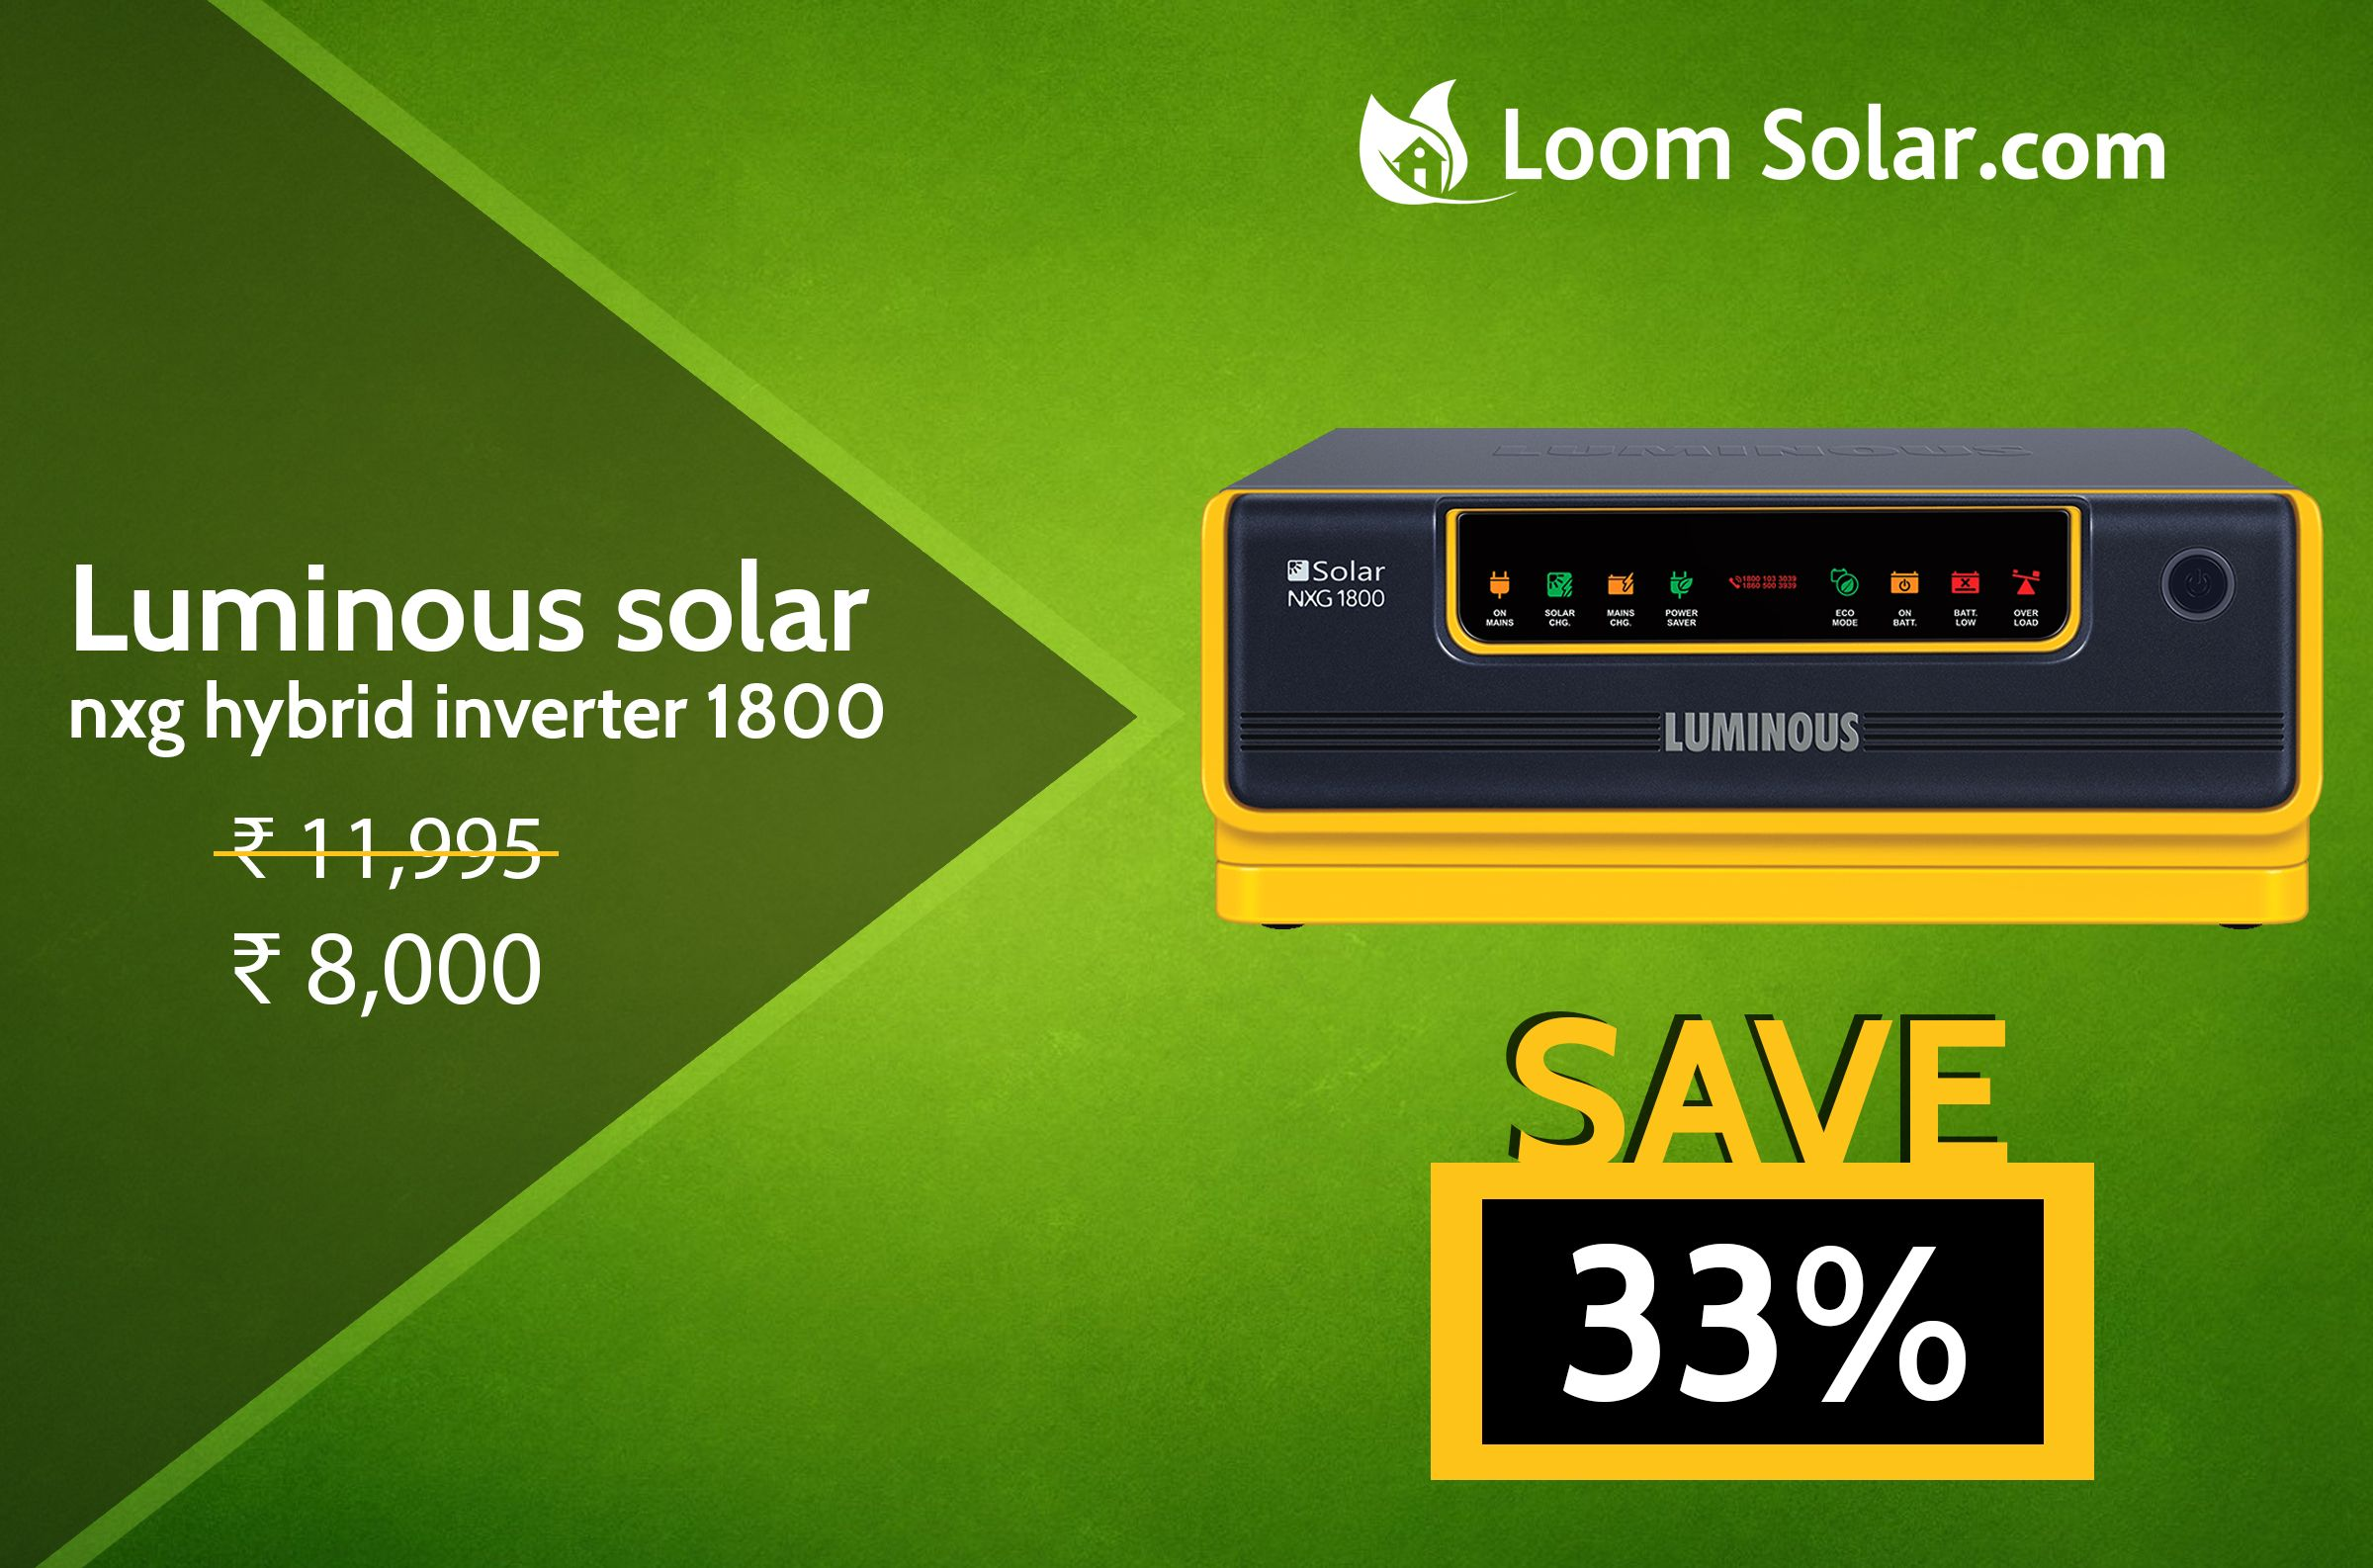 Get 33% off on Luminous solar nxg hybrid inverter 1800